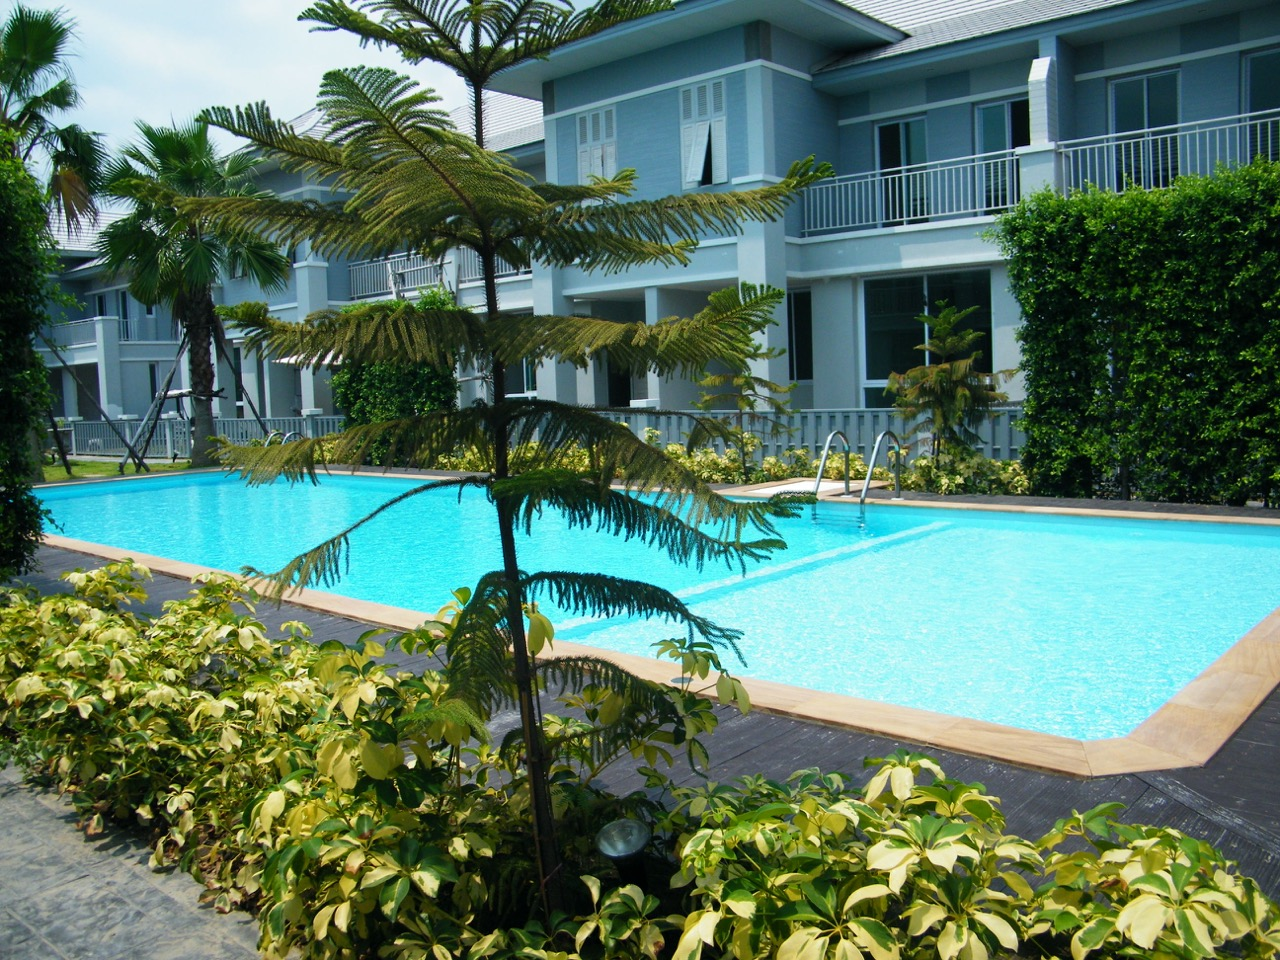 Furnished home and pool in Korat